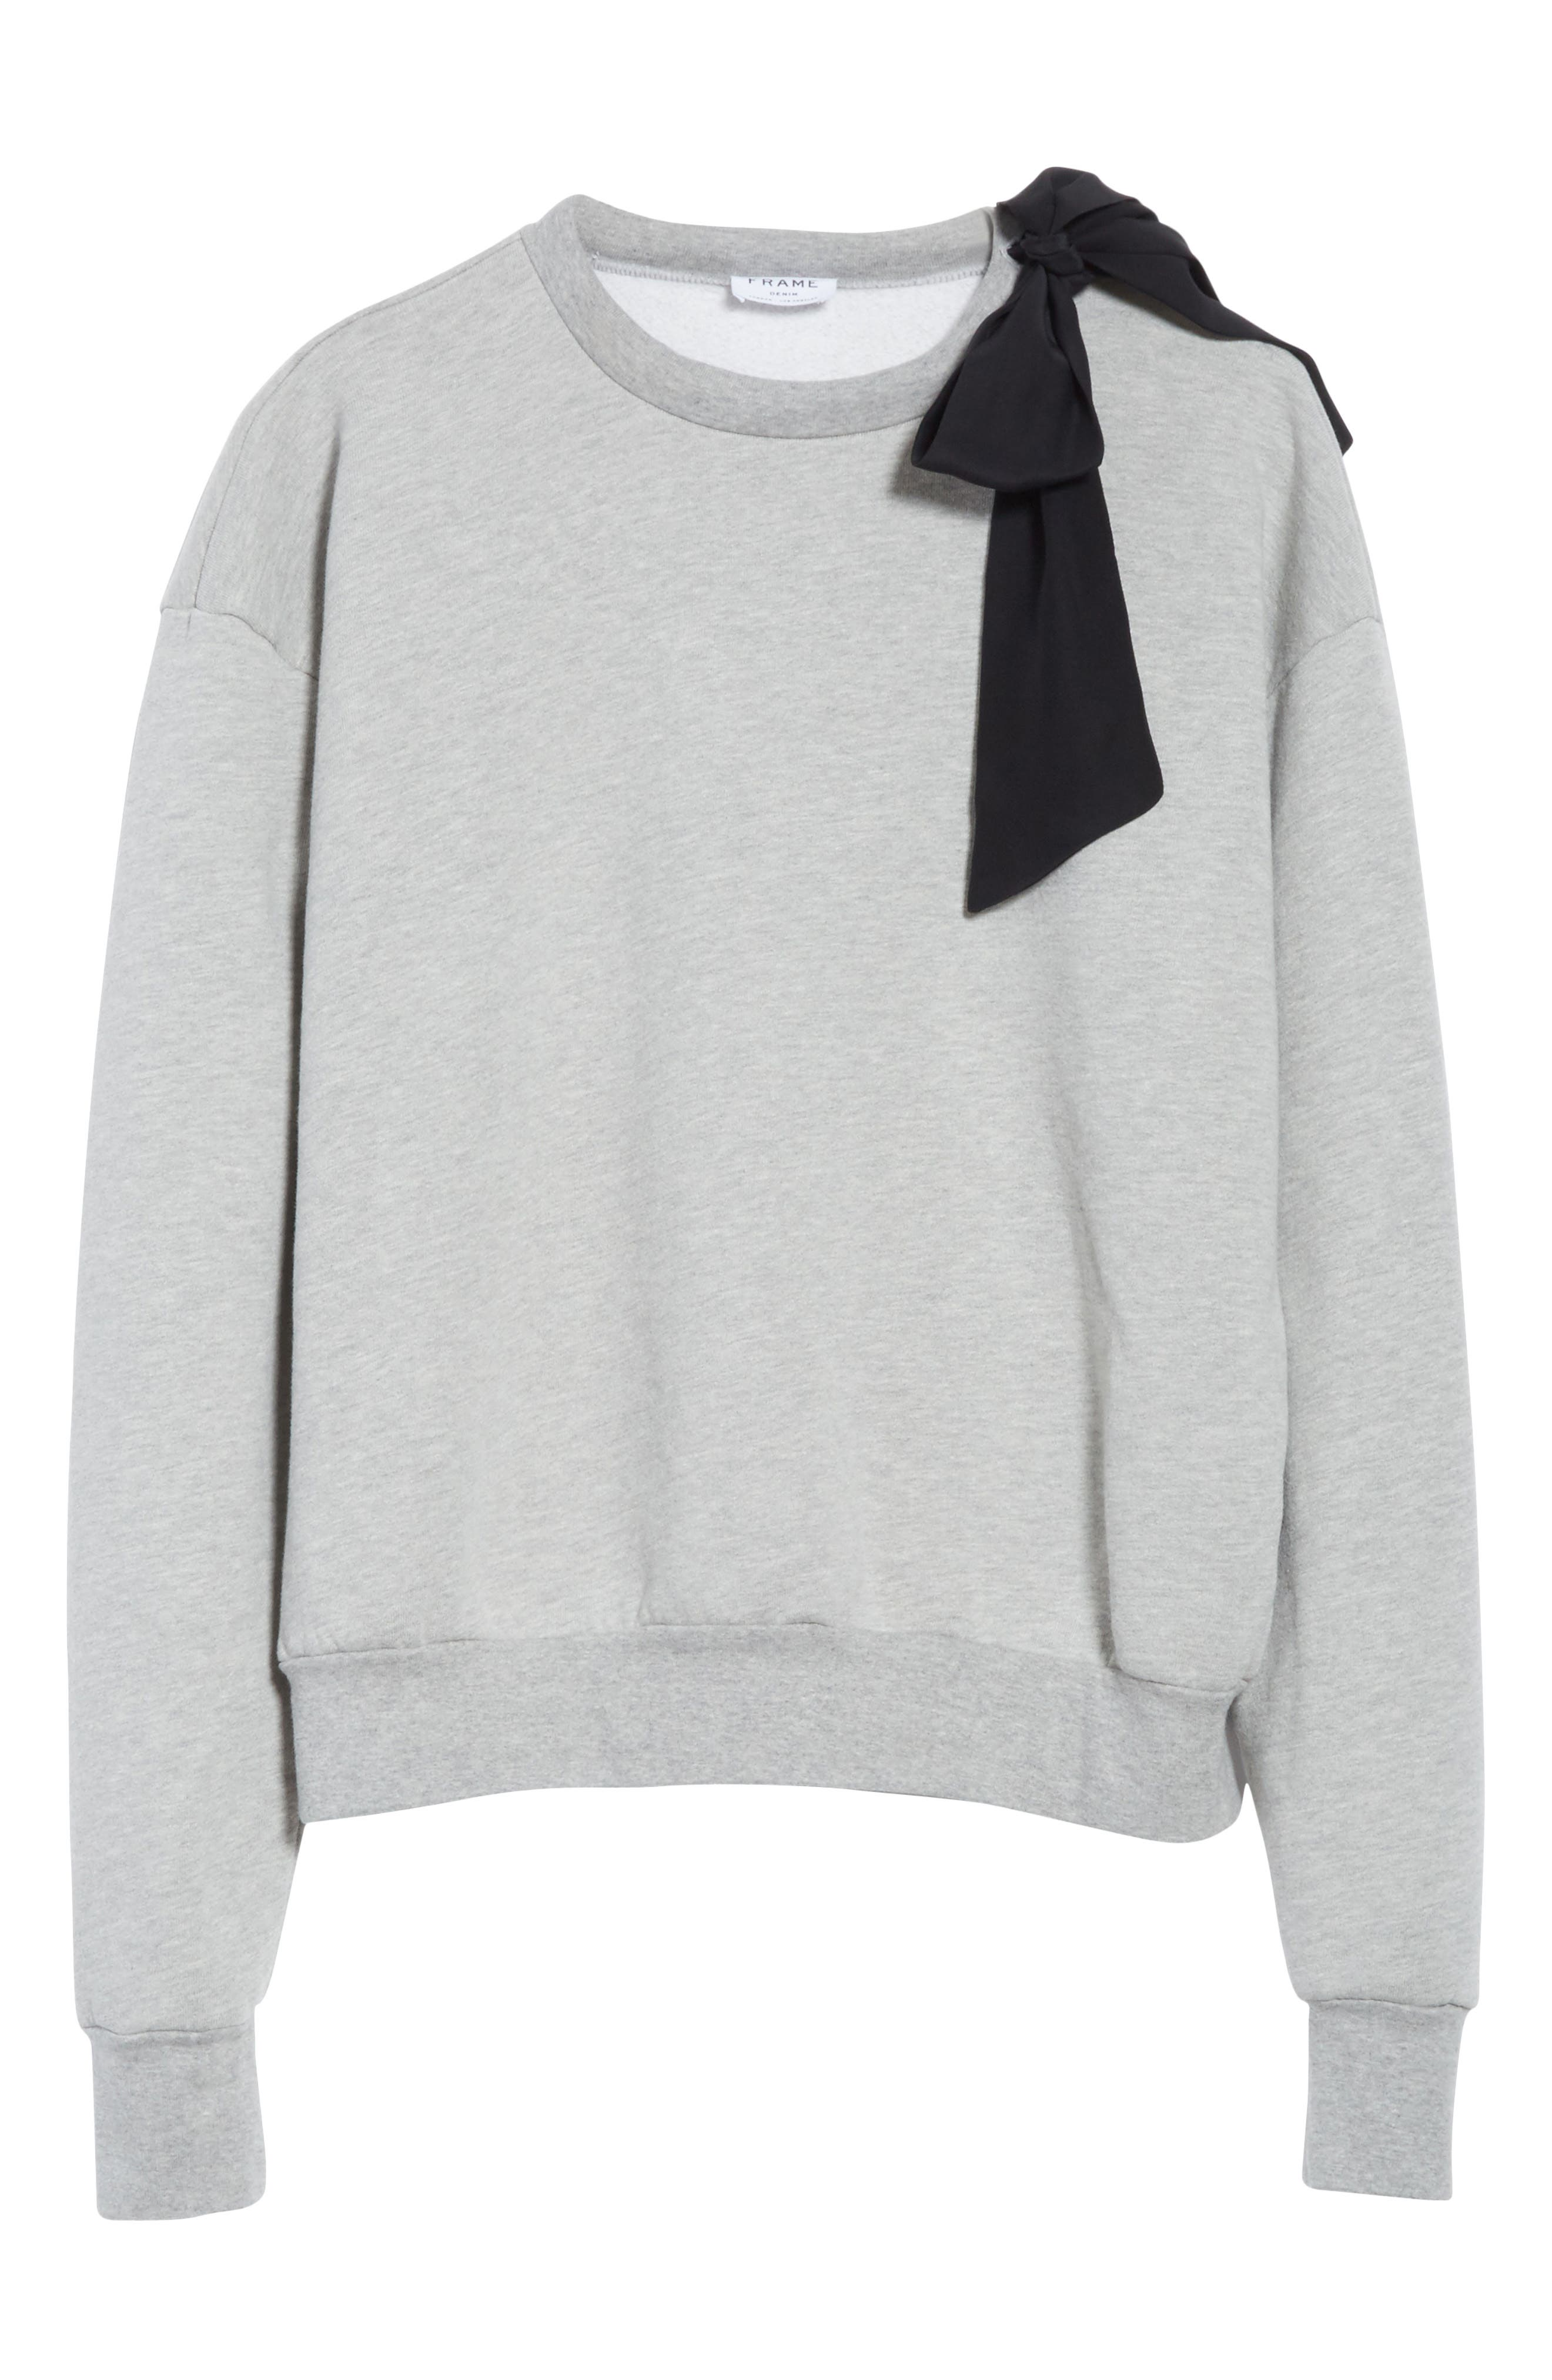 Bow Sweatshirt,                             Alternate thumbnail 6, color,                             Gris